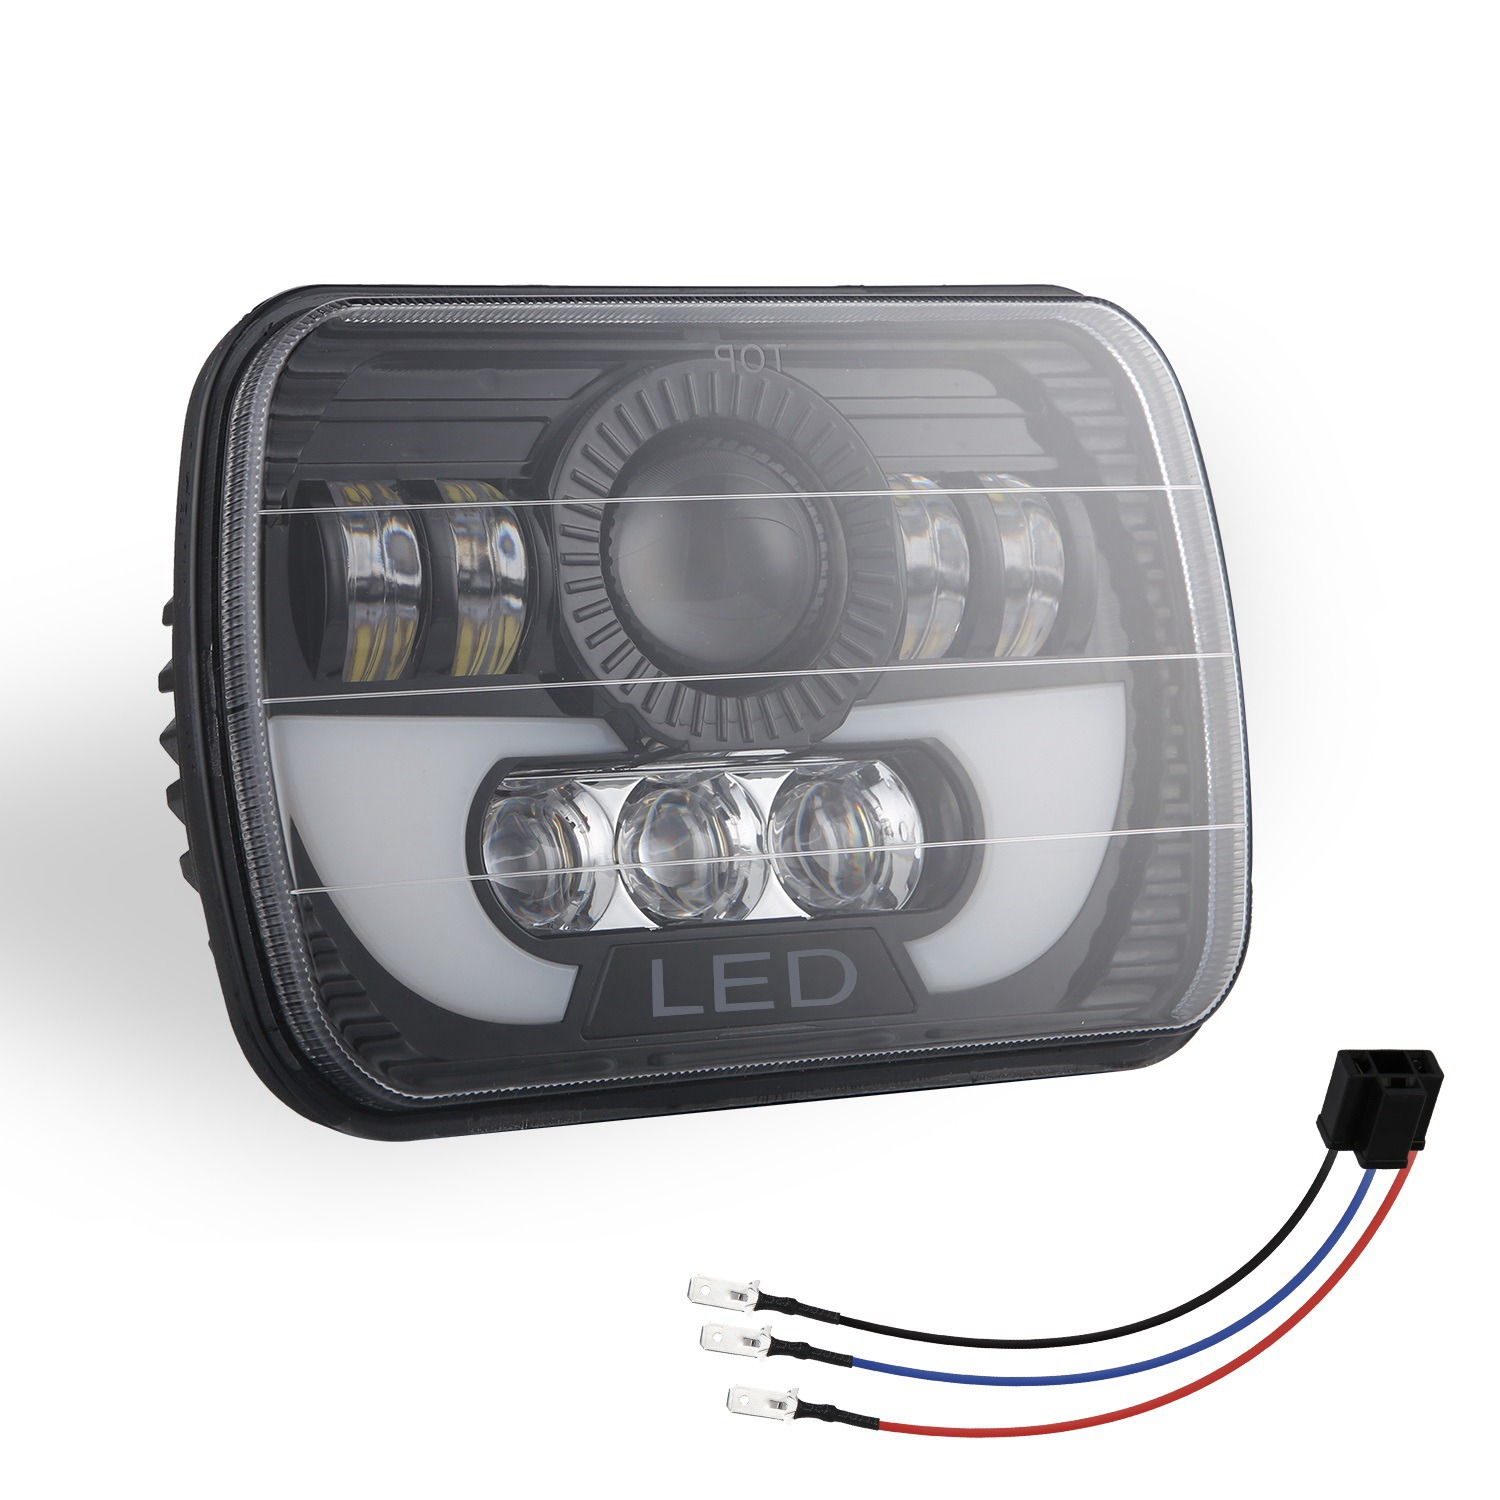 300W 5X7 Led Headlights Led Sealed Beam head light lamp With High Low Beam Led Headlight For Jeep Wrangler Yj Cherokee Xj